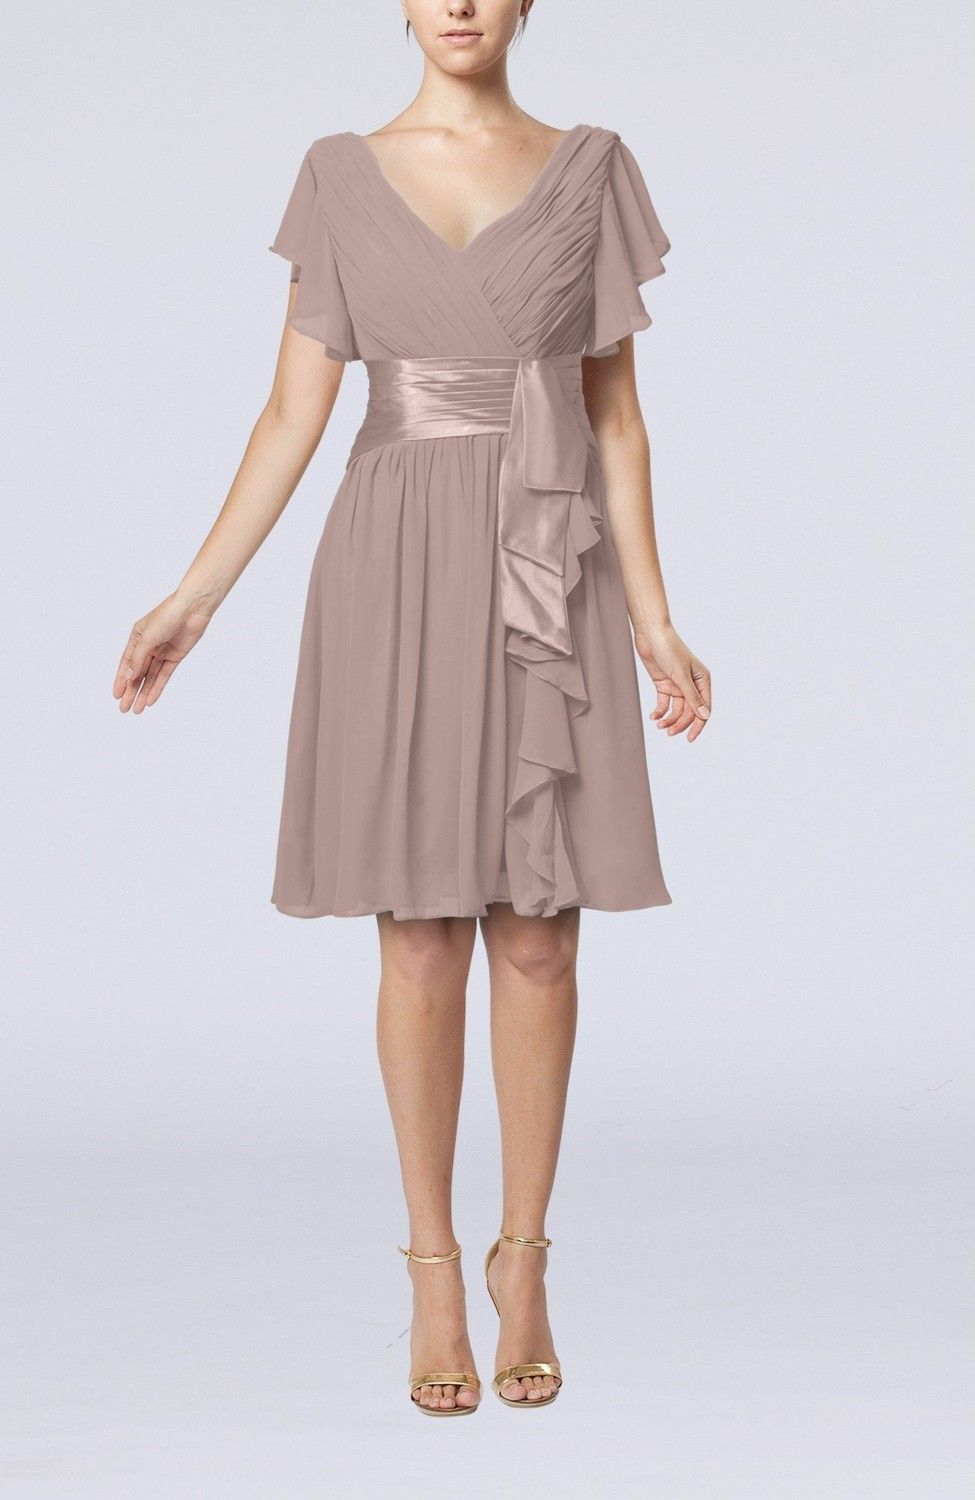 Mid length dresses for wedding guests  Fawn Guest Dress  Romantic Short Sleeve Zip up Knee Length Short